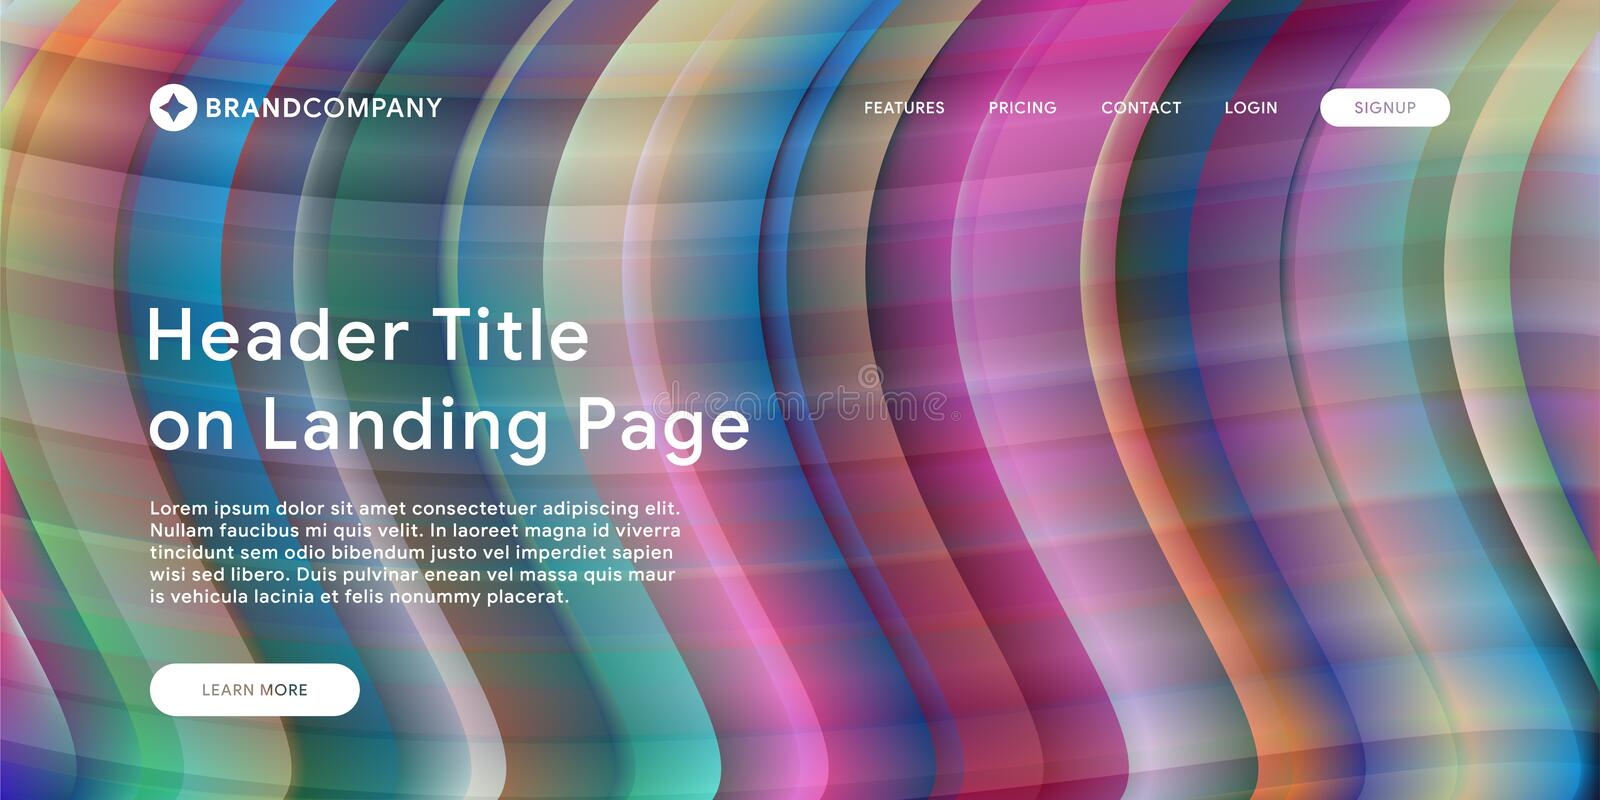 Website or mobile app landing page with illustration of Abstract Colorful Minimal Geometric Pattern Background Design and Gradient. Vector illustration of royalty free stock images